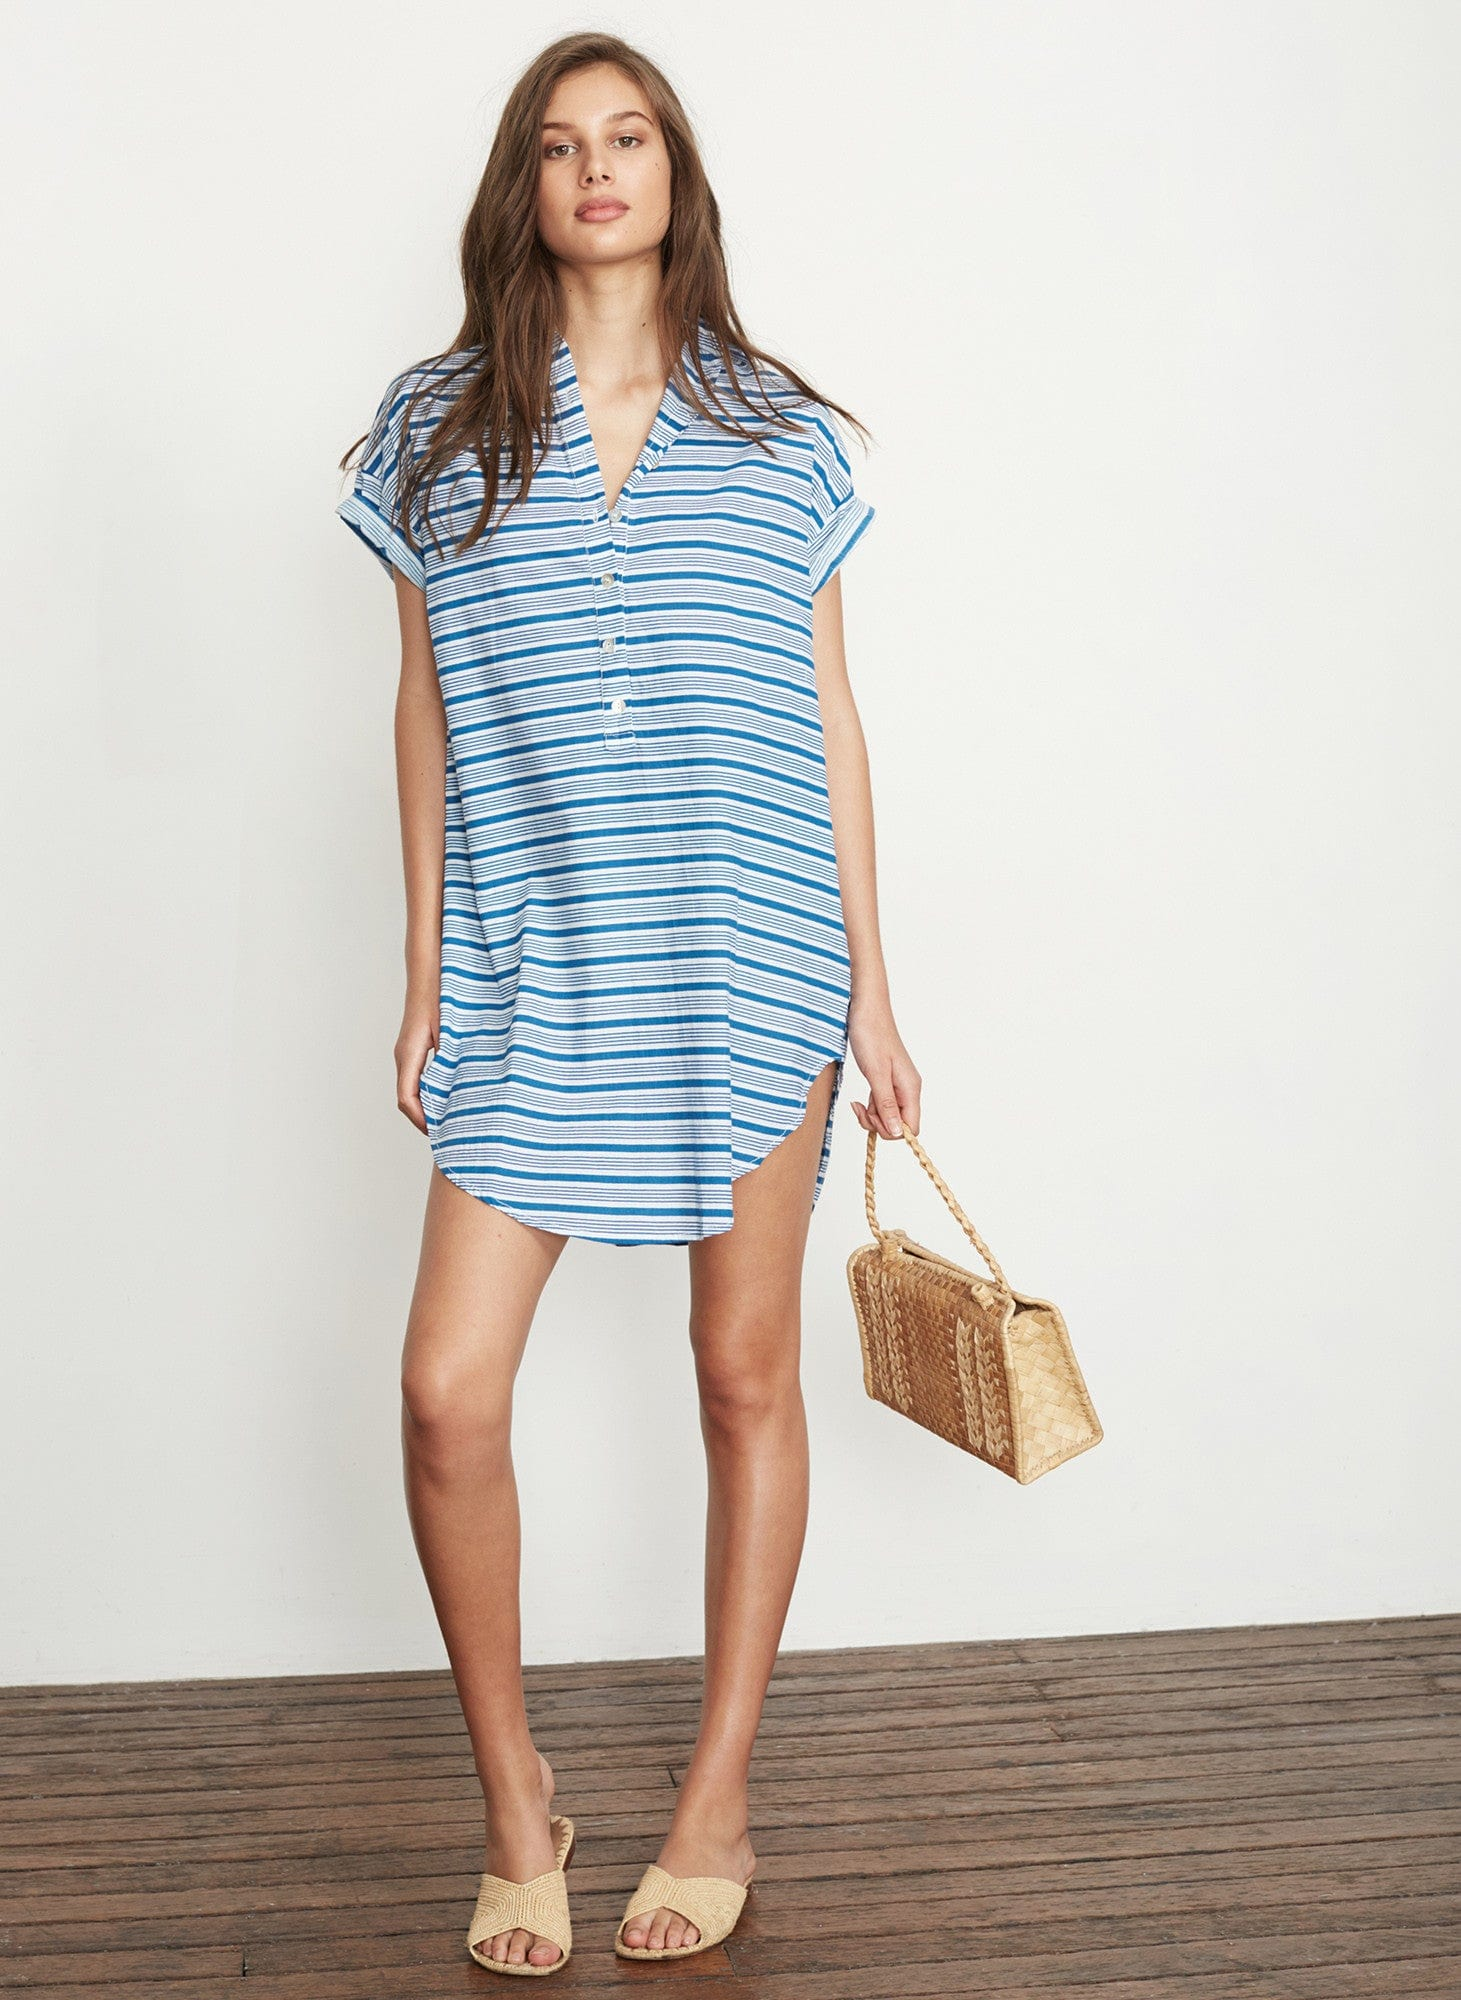 PUGLIA STRIPE PRINT - AARON SHIRT DRESS